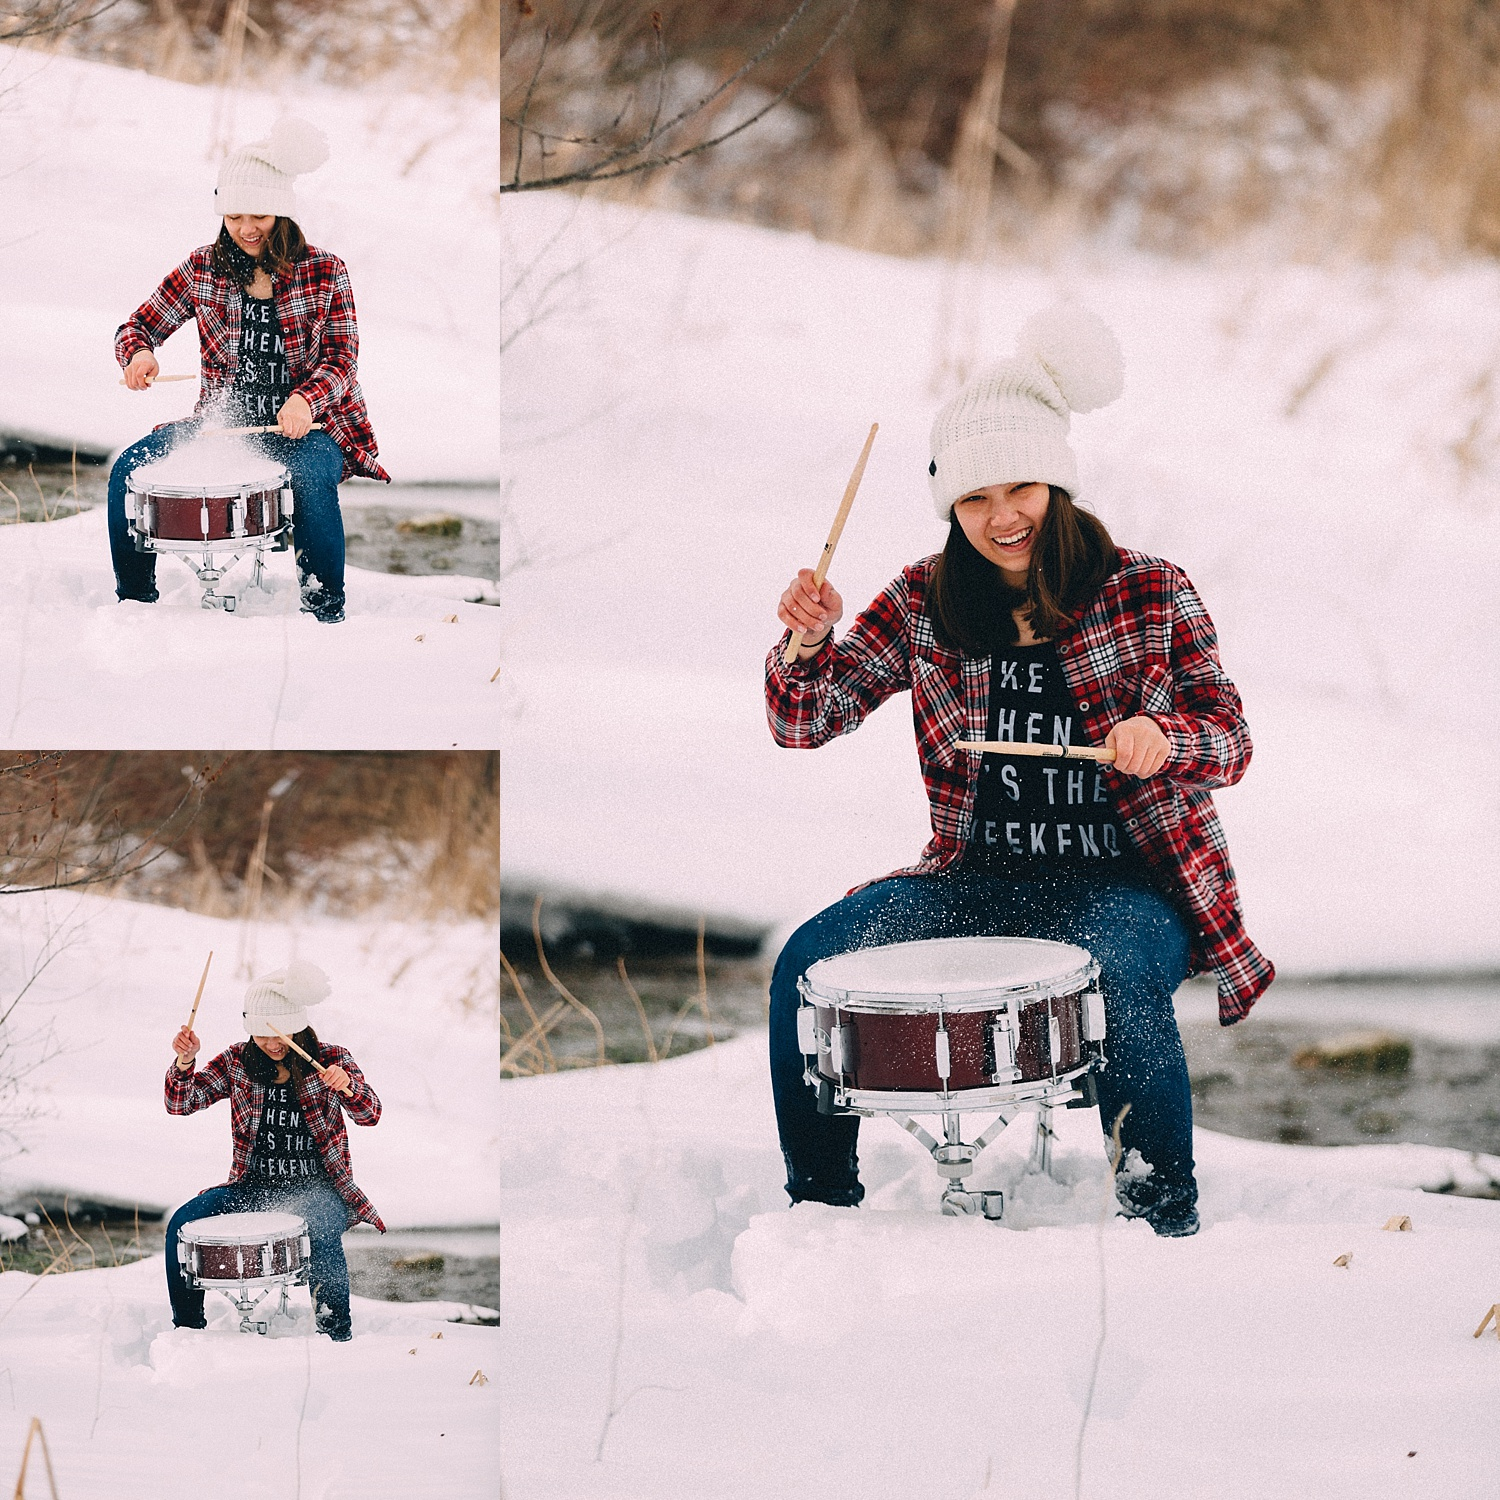 Berks County snowy teenager photoshoot